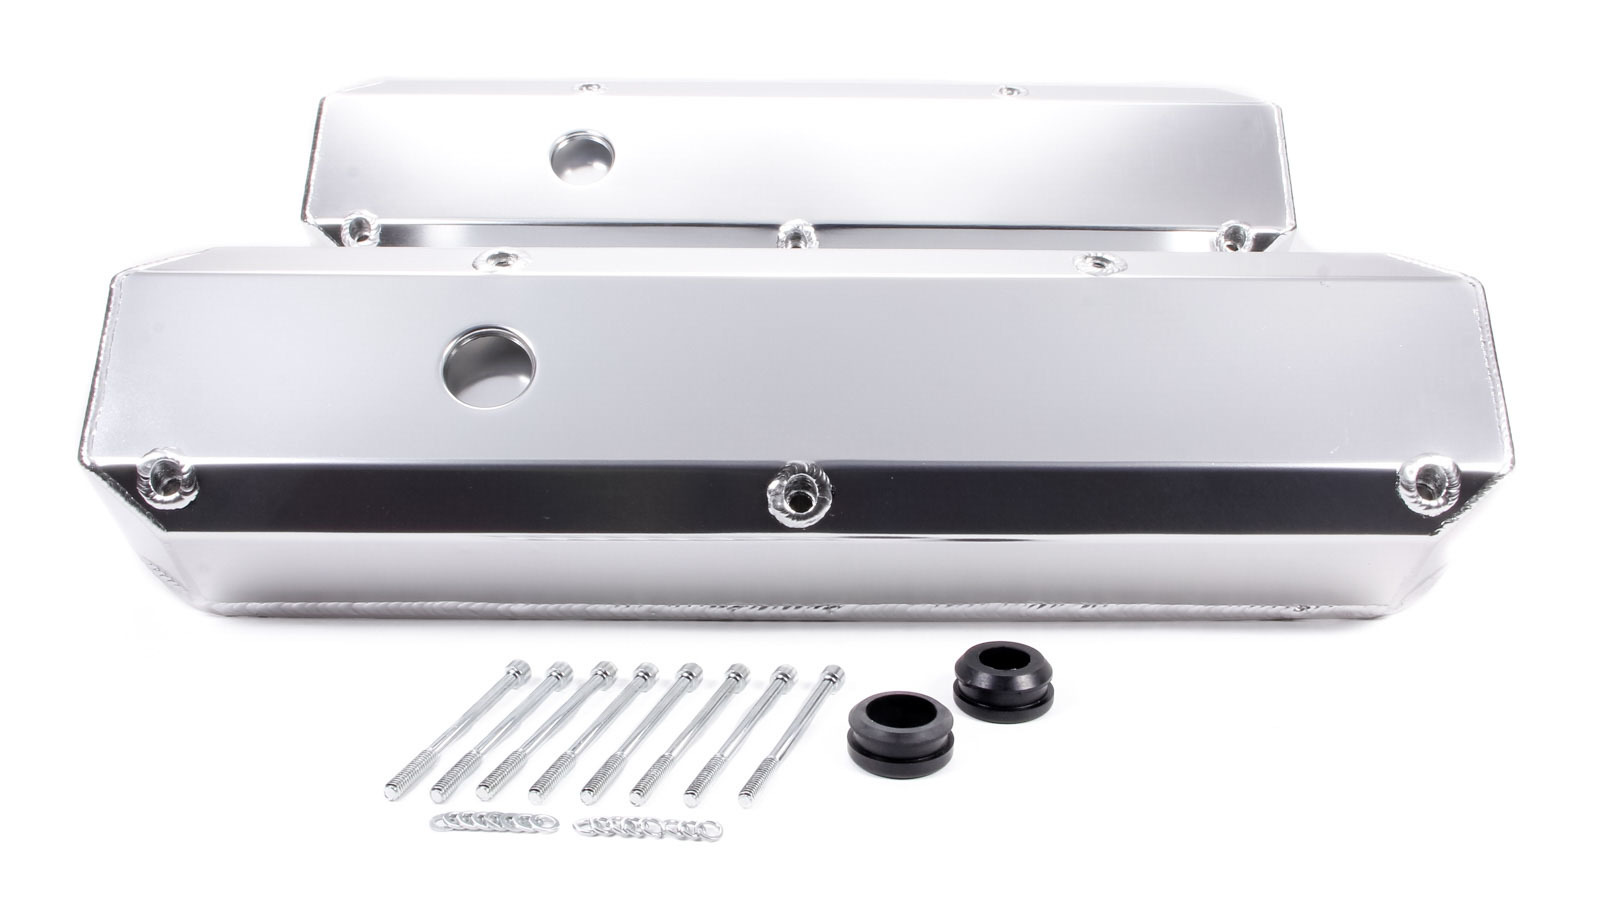 Racing Power Company R6246 Valve Cover, Tall, 3-7/16 in Height, Breather Holes, Hardware Included, Fabricated Aluminum, Clear Anodized, Recessed Bolts, Small Block Mopar, Pair